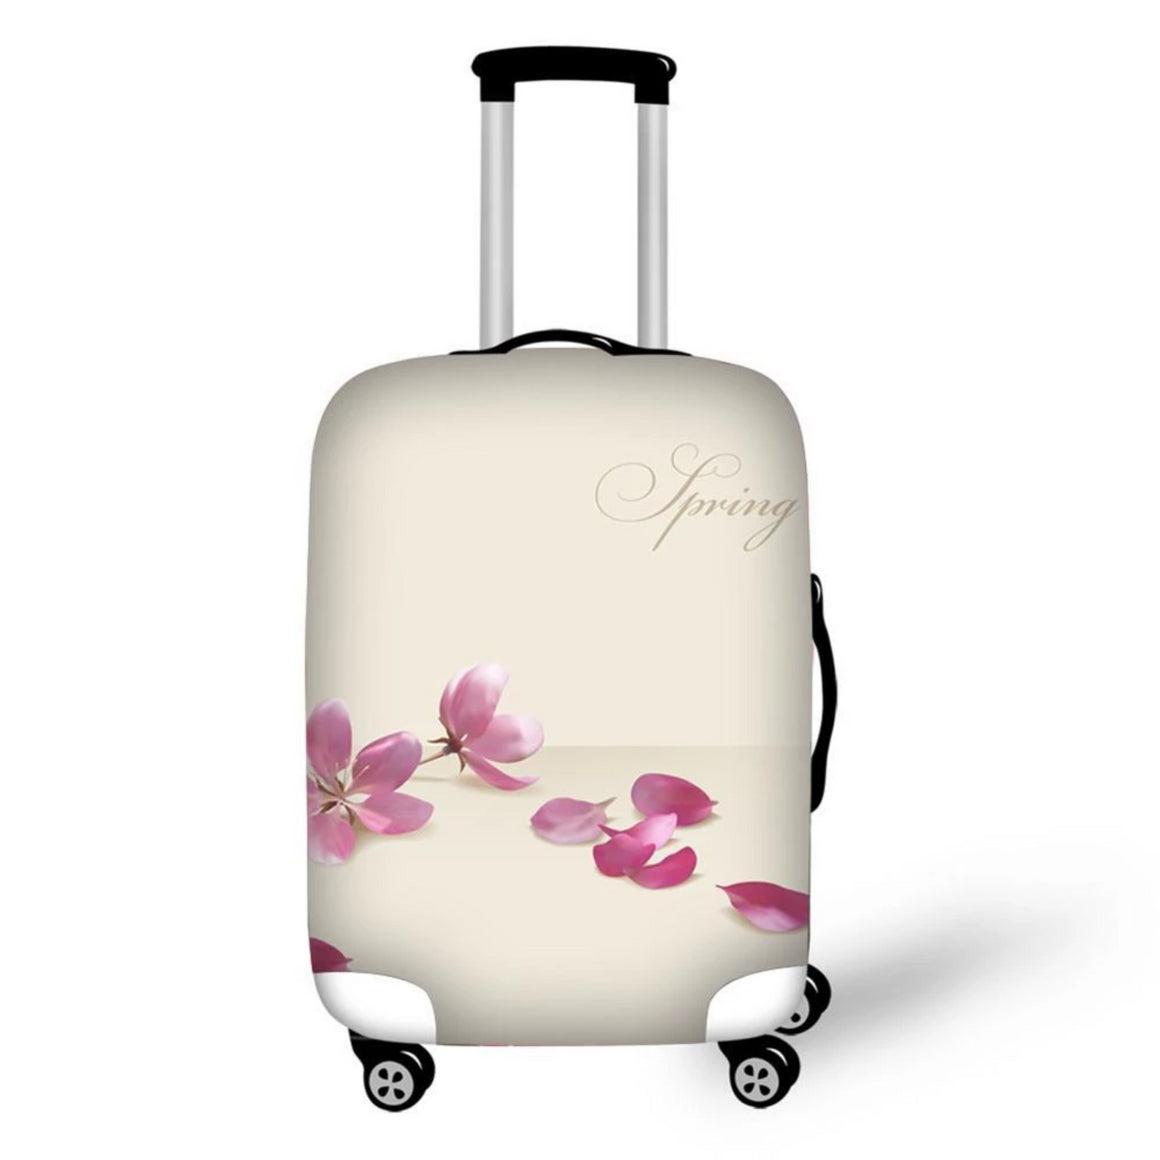 Creative Waterproof Luggage Covers Pink Flowers Print Elastic Dustproof Suitcase Cover 18-30 Inch Travel Case Accessories